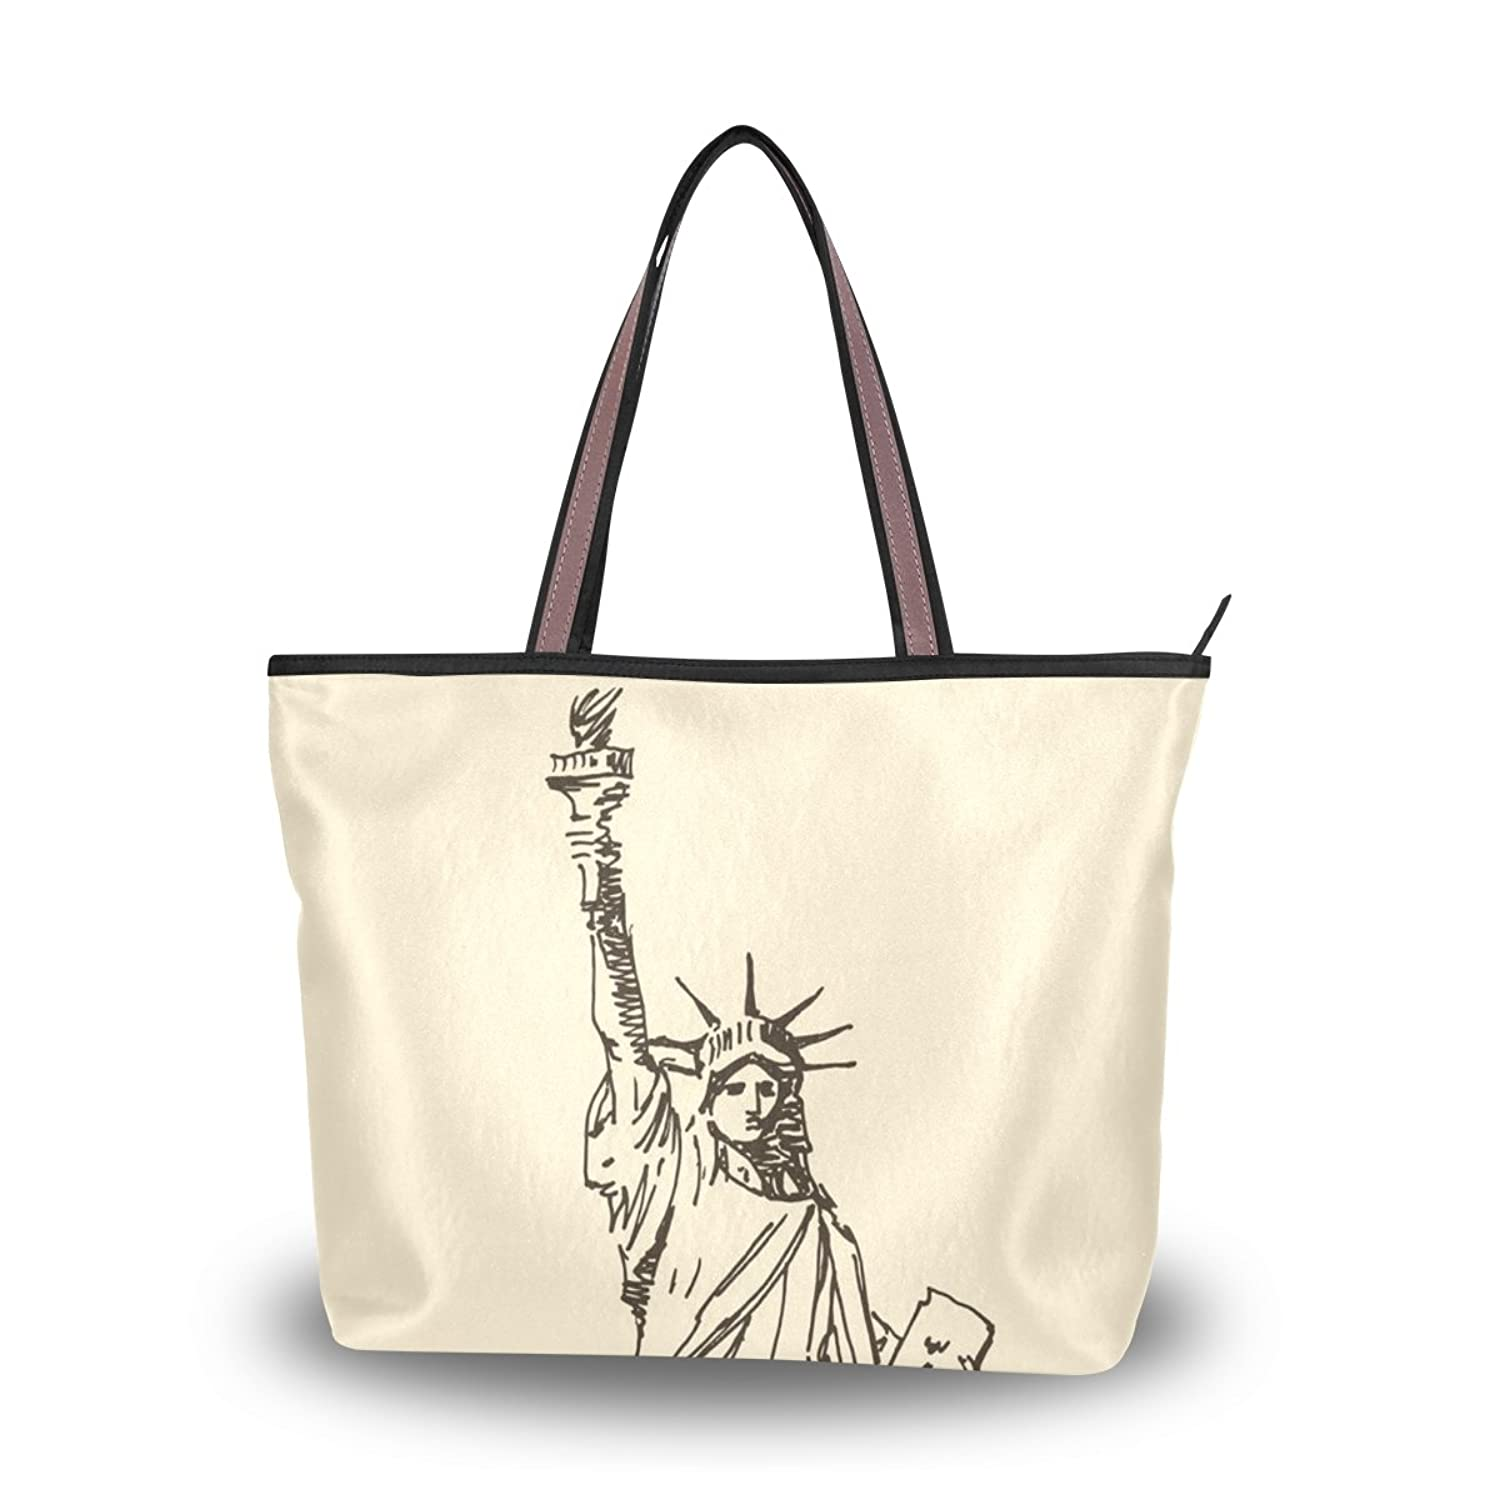 Senya Women's Handbag Microfiber Large Tote Shoulder Bag, Statue Of Liberty